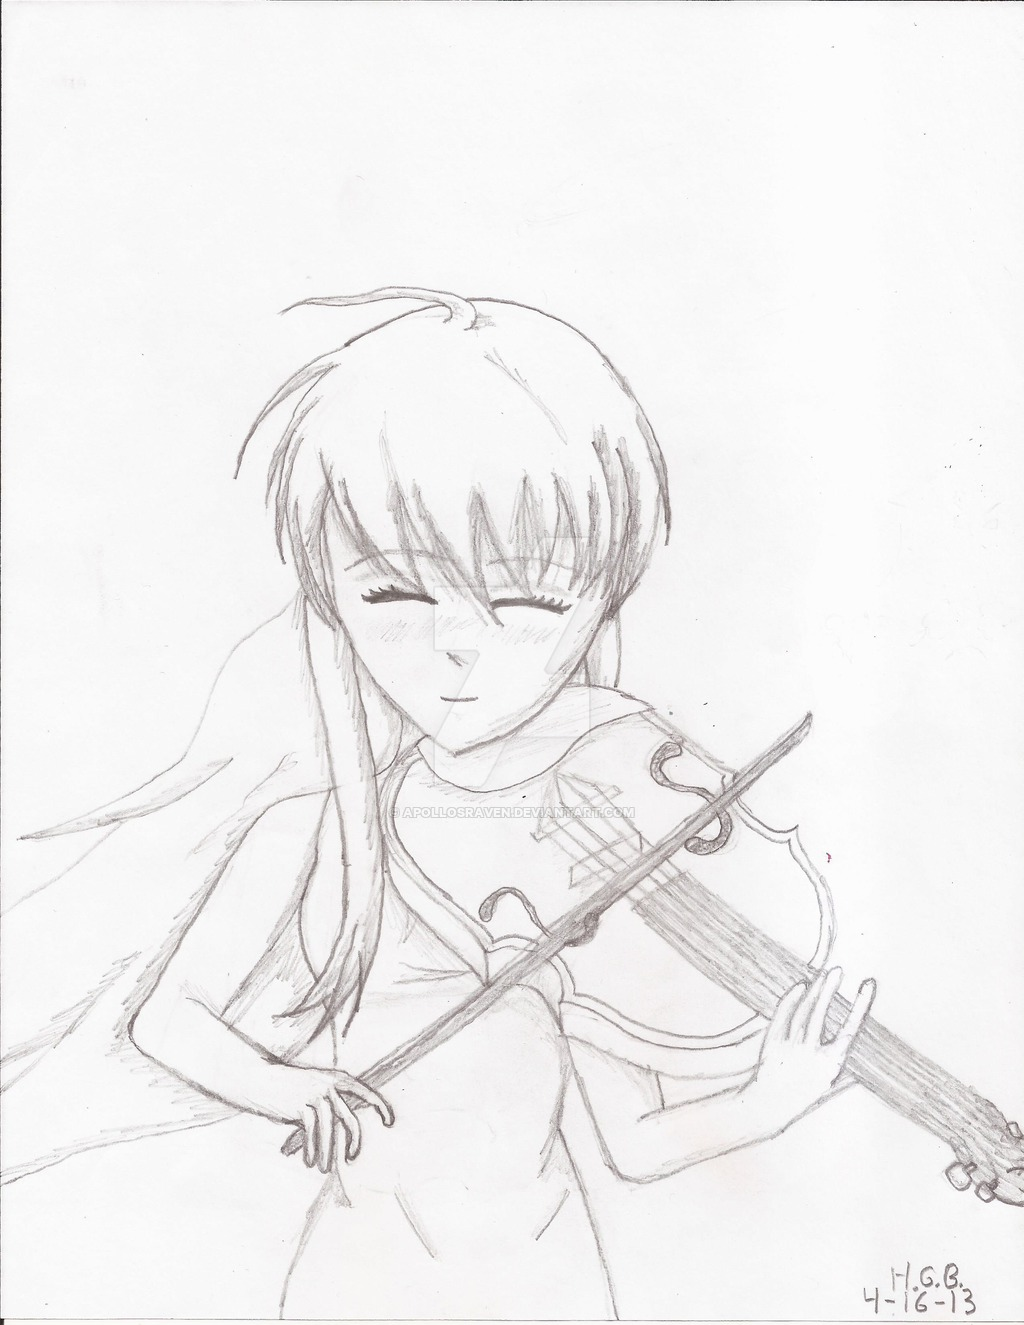 Drawn violinist anime ApollosRaven The Girl Playing Violin